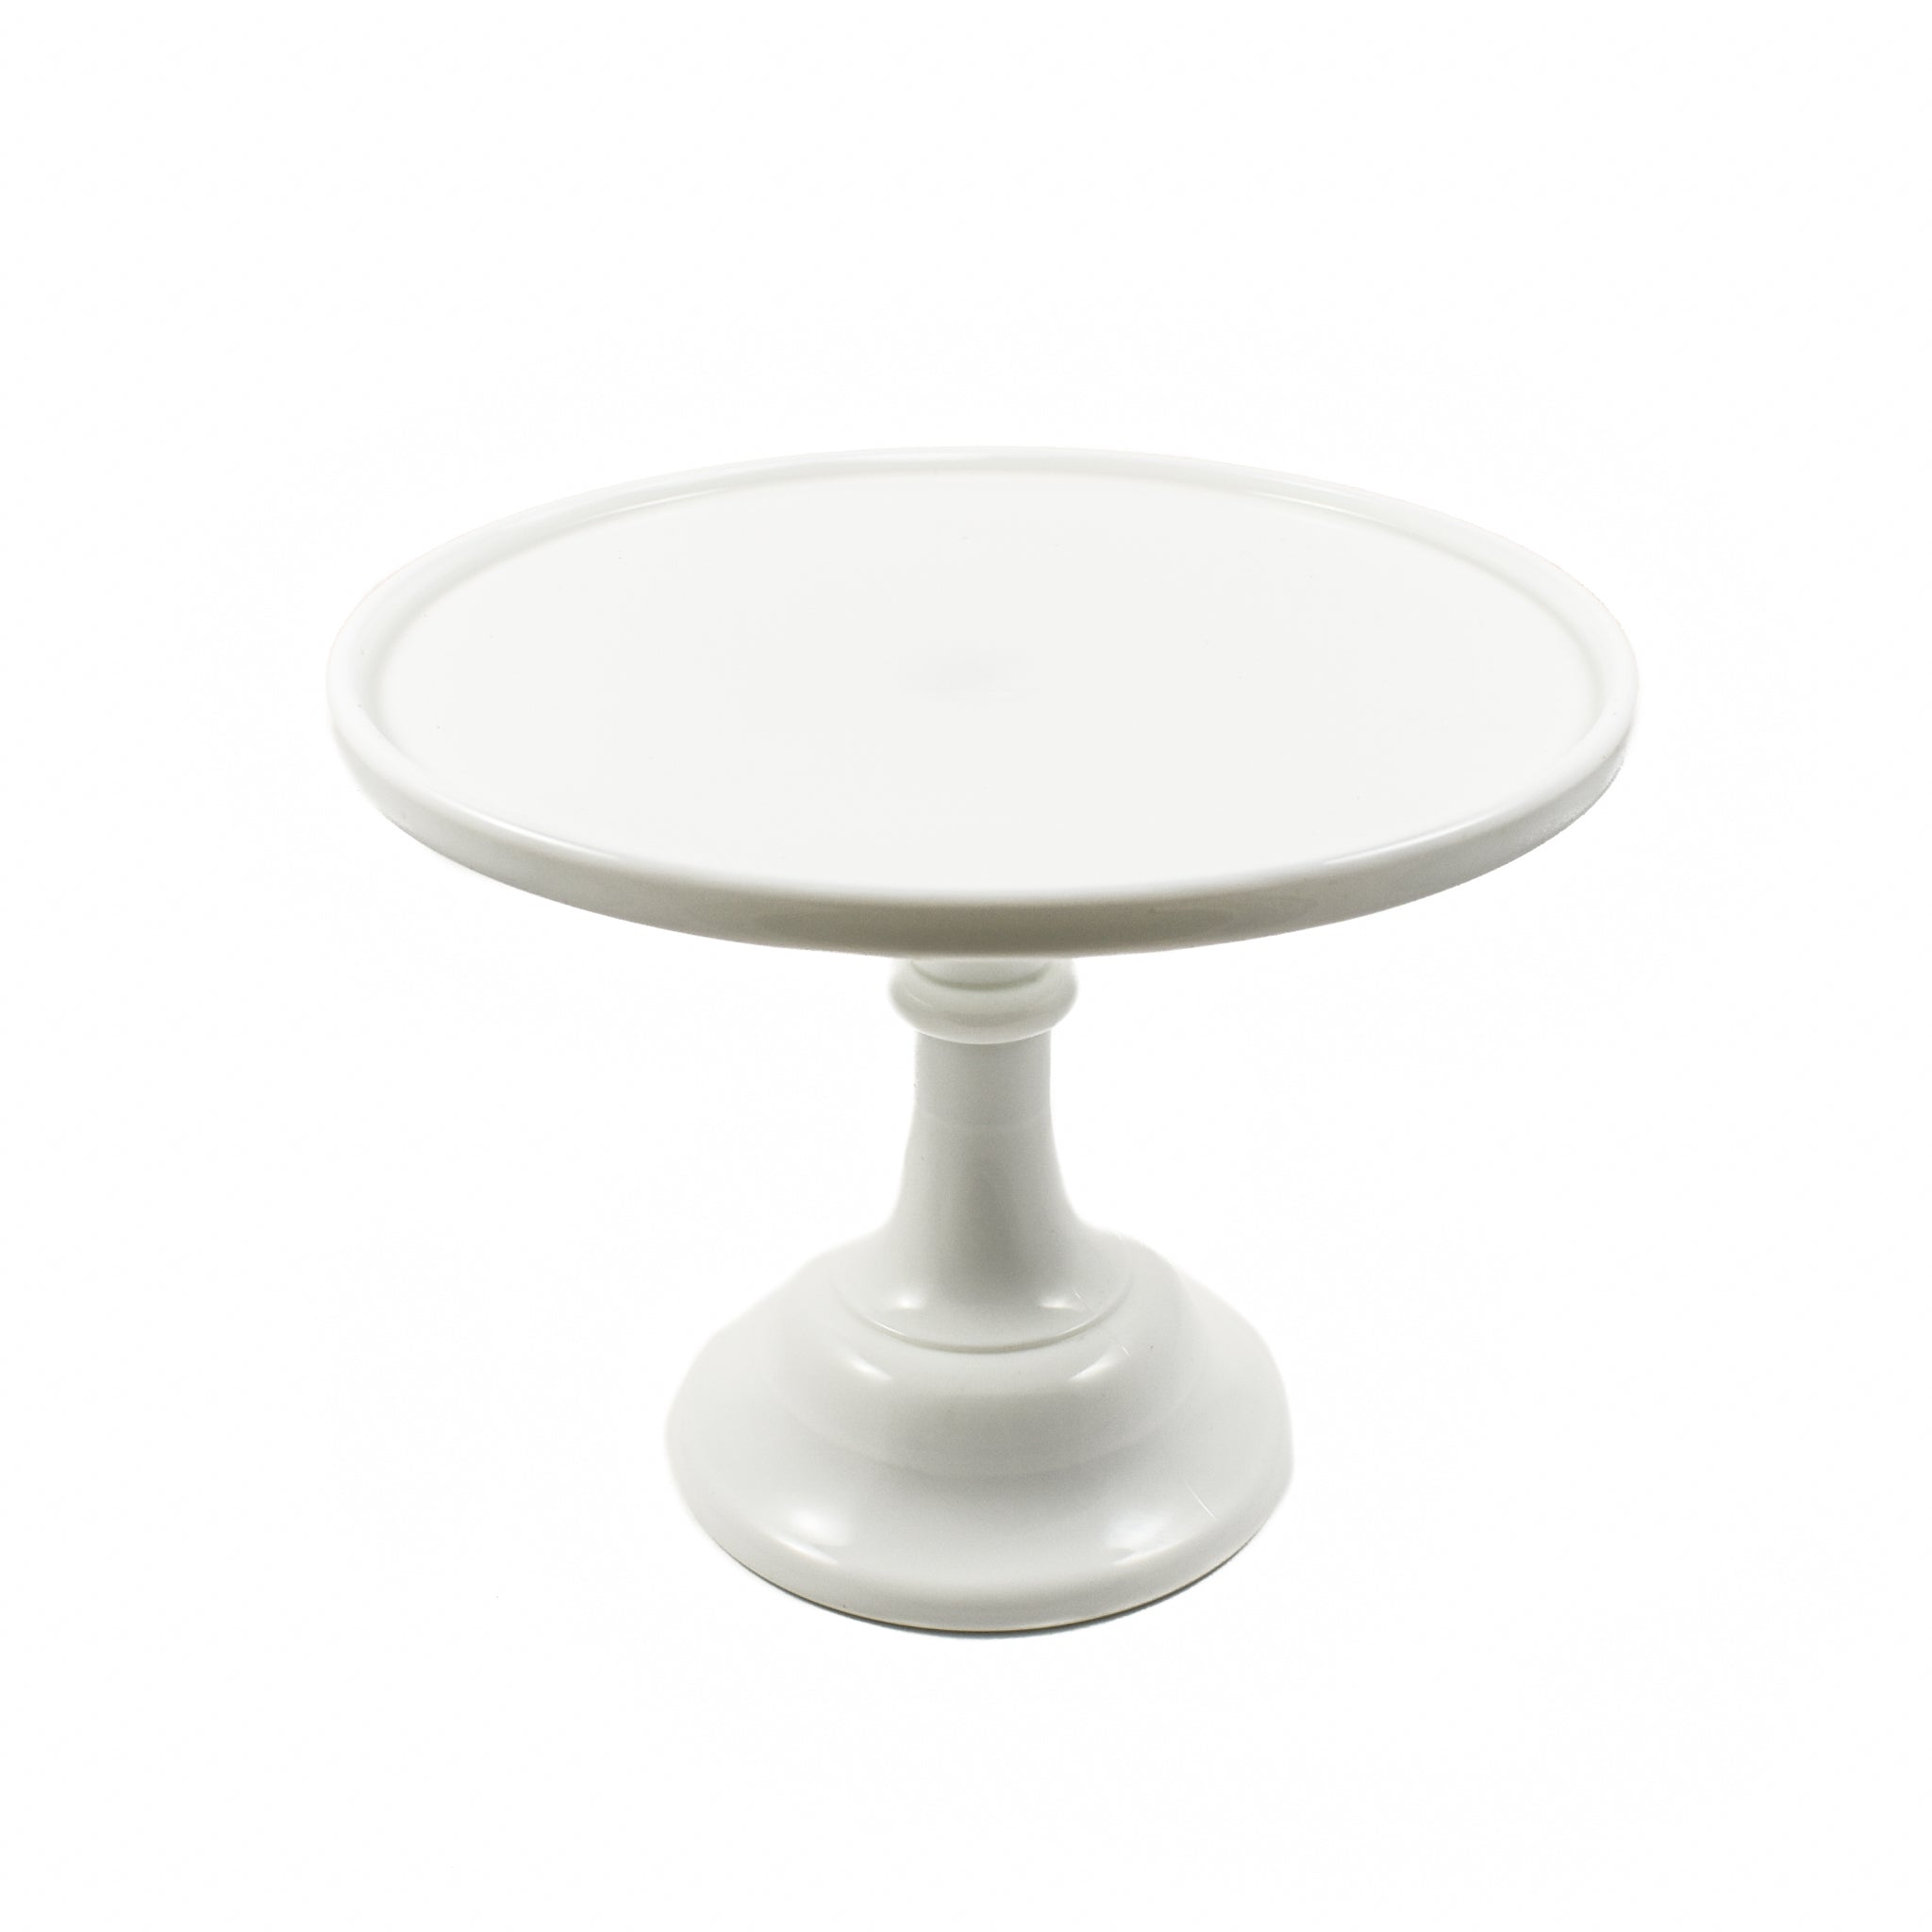 Mosser Glass Cake Stand In Milk White Buy Online Today At Sous Chef Uk